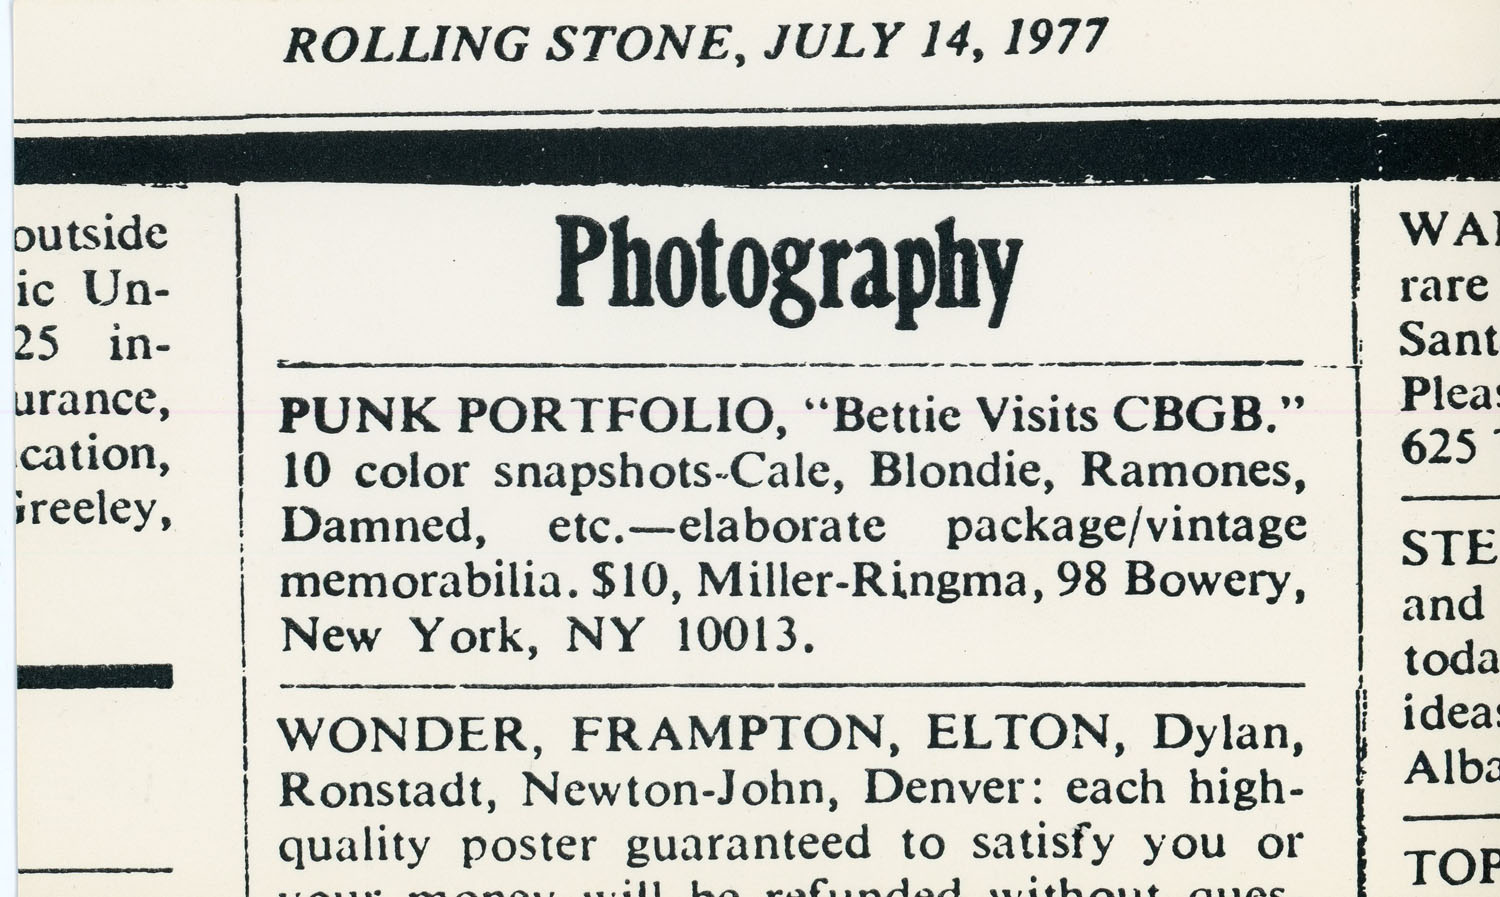 Advertisement for 'Bettie Visits CBGB' Punk Portfolio in Rolling Stones, 1977